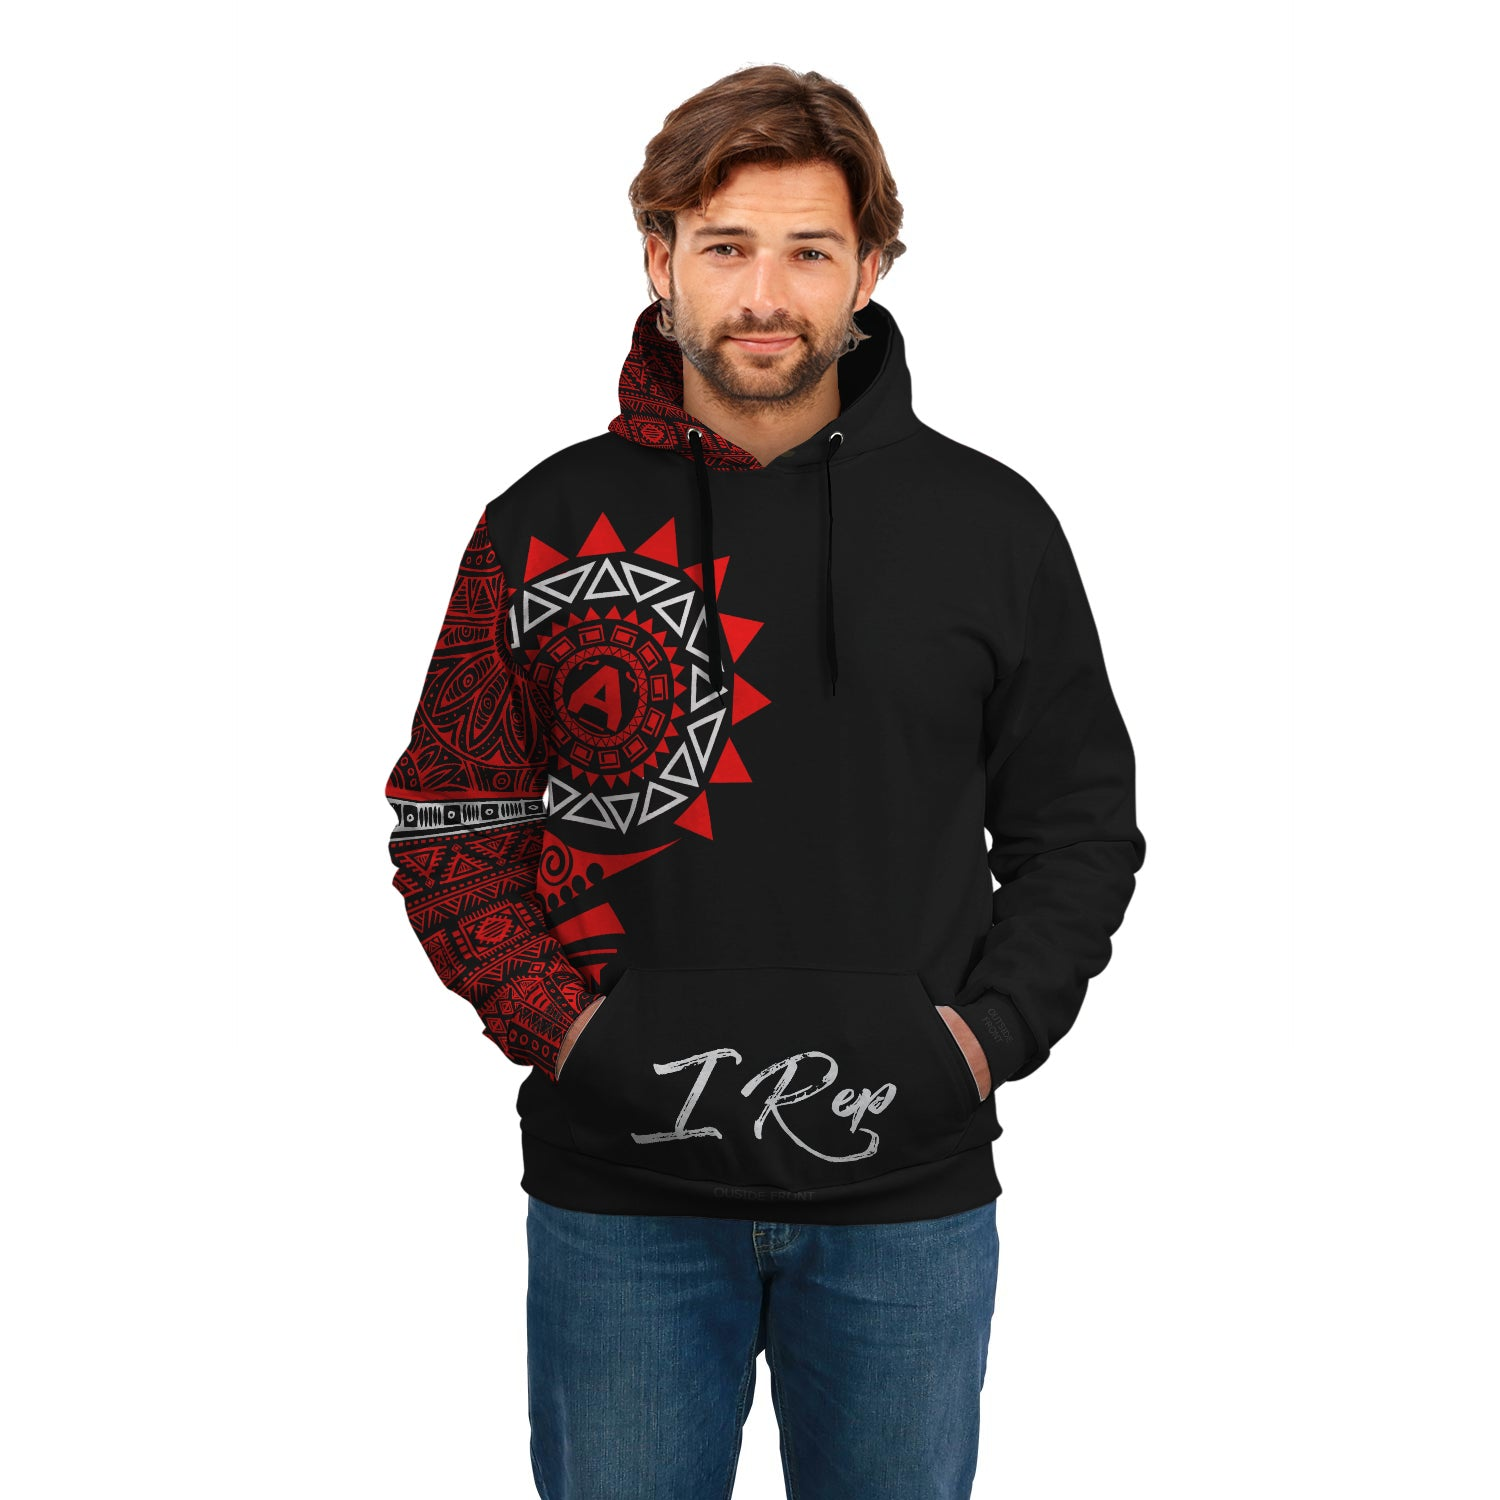 I REP FRONT POCKET HOODIE - Red